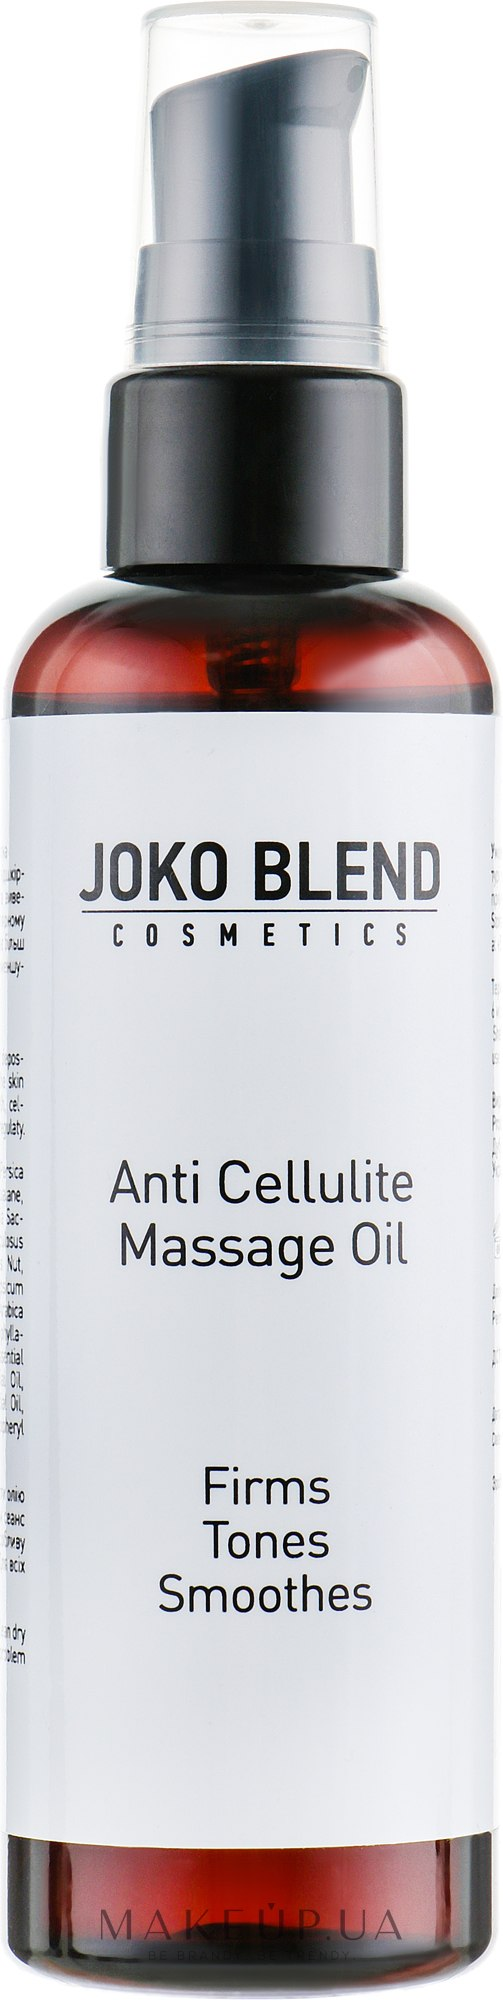 Масло массажное - Joko Blend Anti Cellulite Massage Oil — фото 100ml